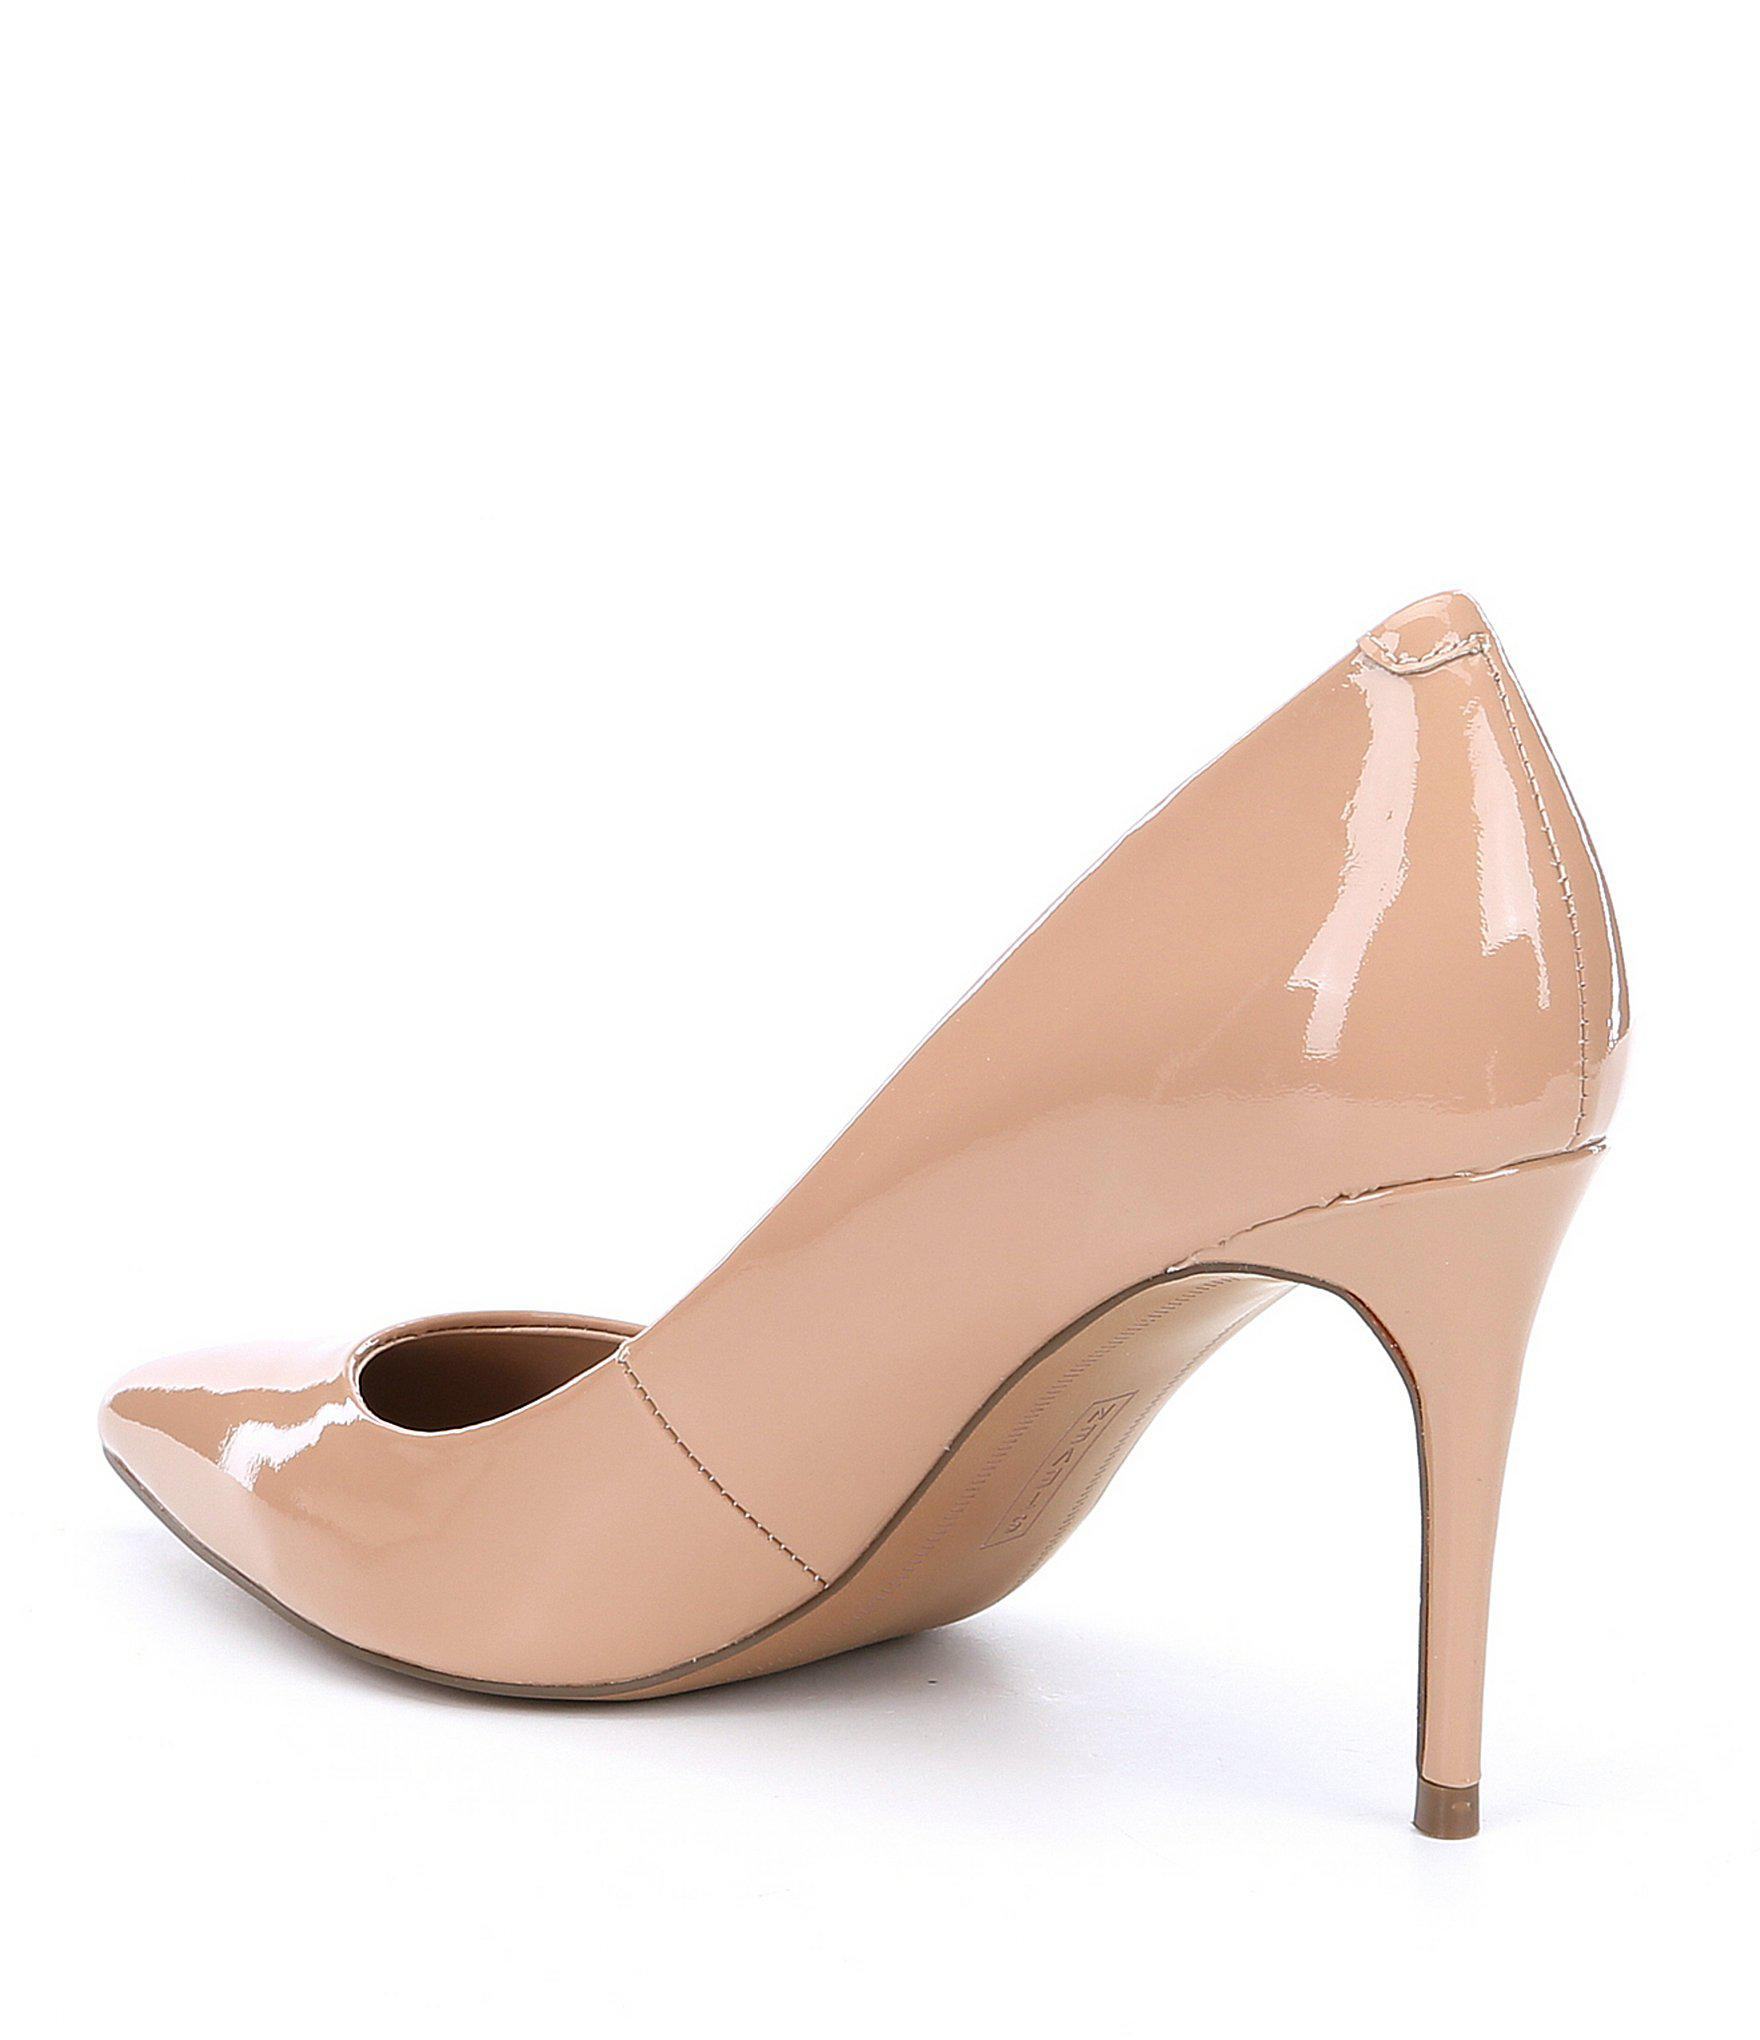 eab5ca9e02a Lyst - Steve Madden Steven By Local Patent Leather Pointed Toe Pumps ...